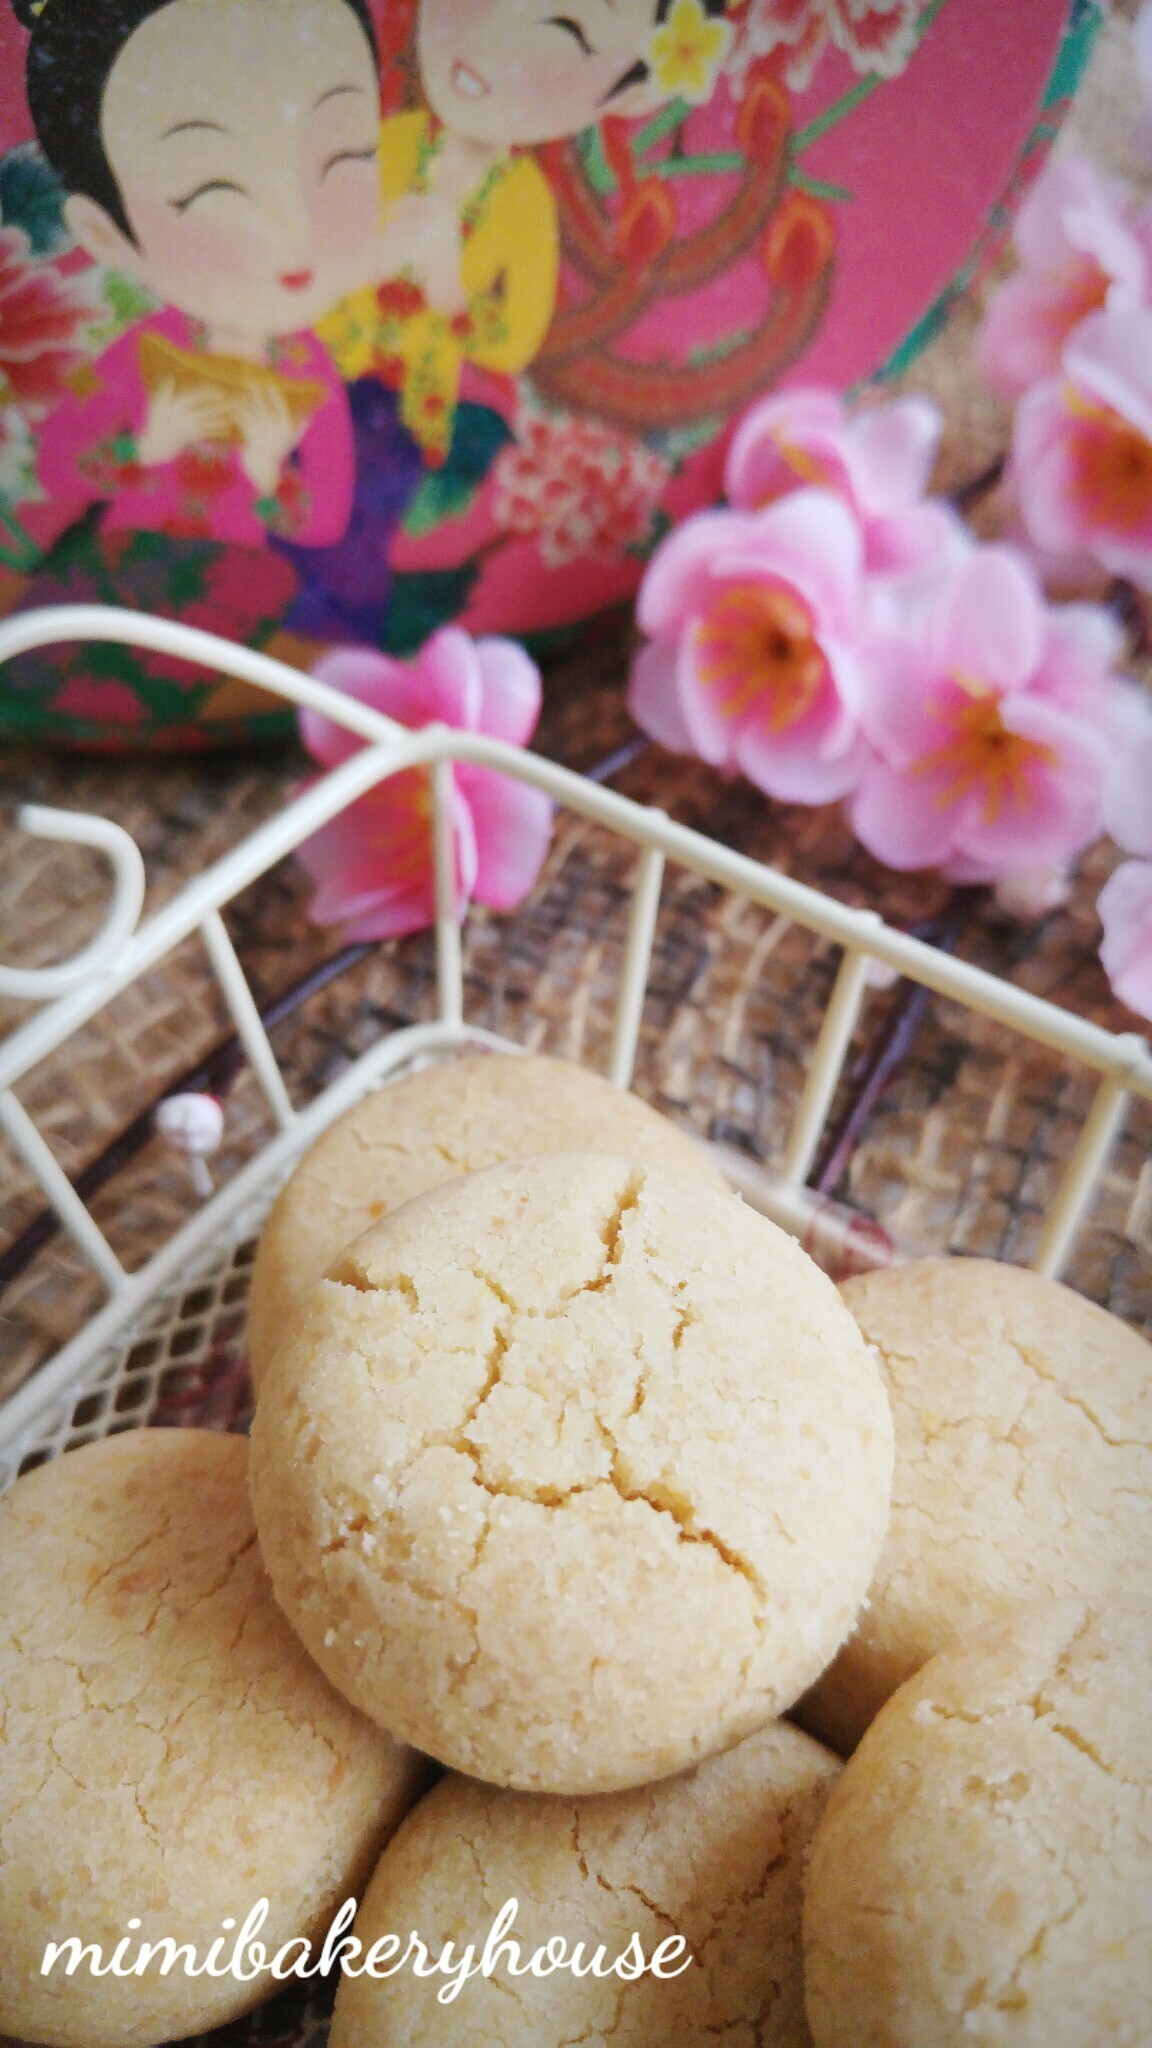 Peanut Cookies [20 Jan 2016]